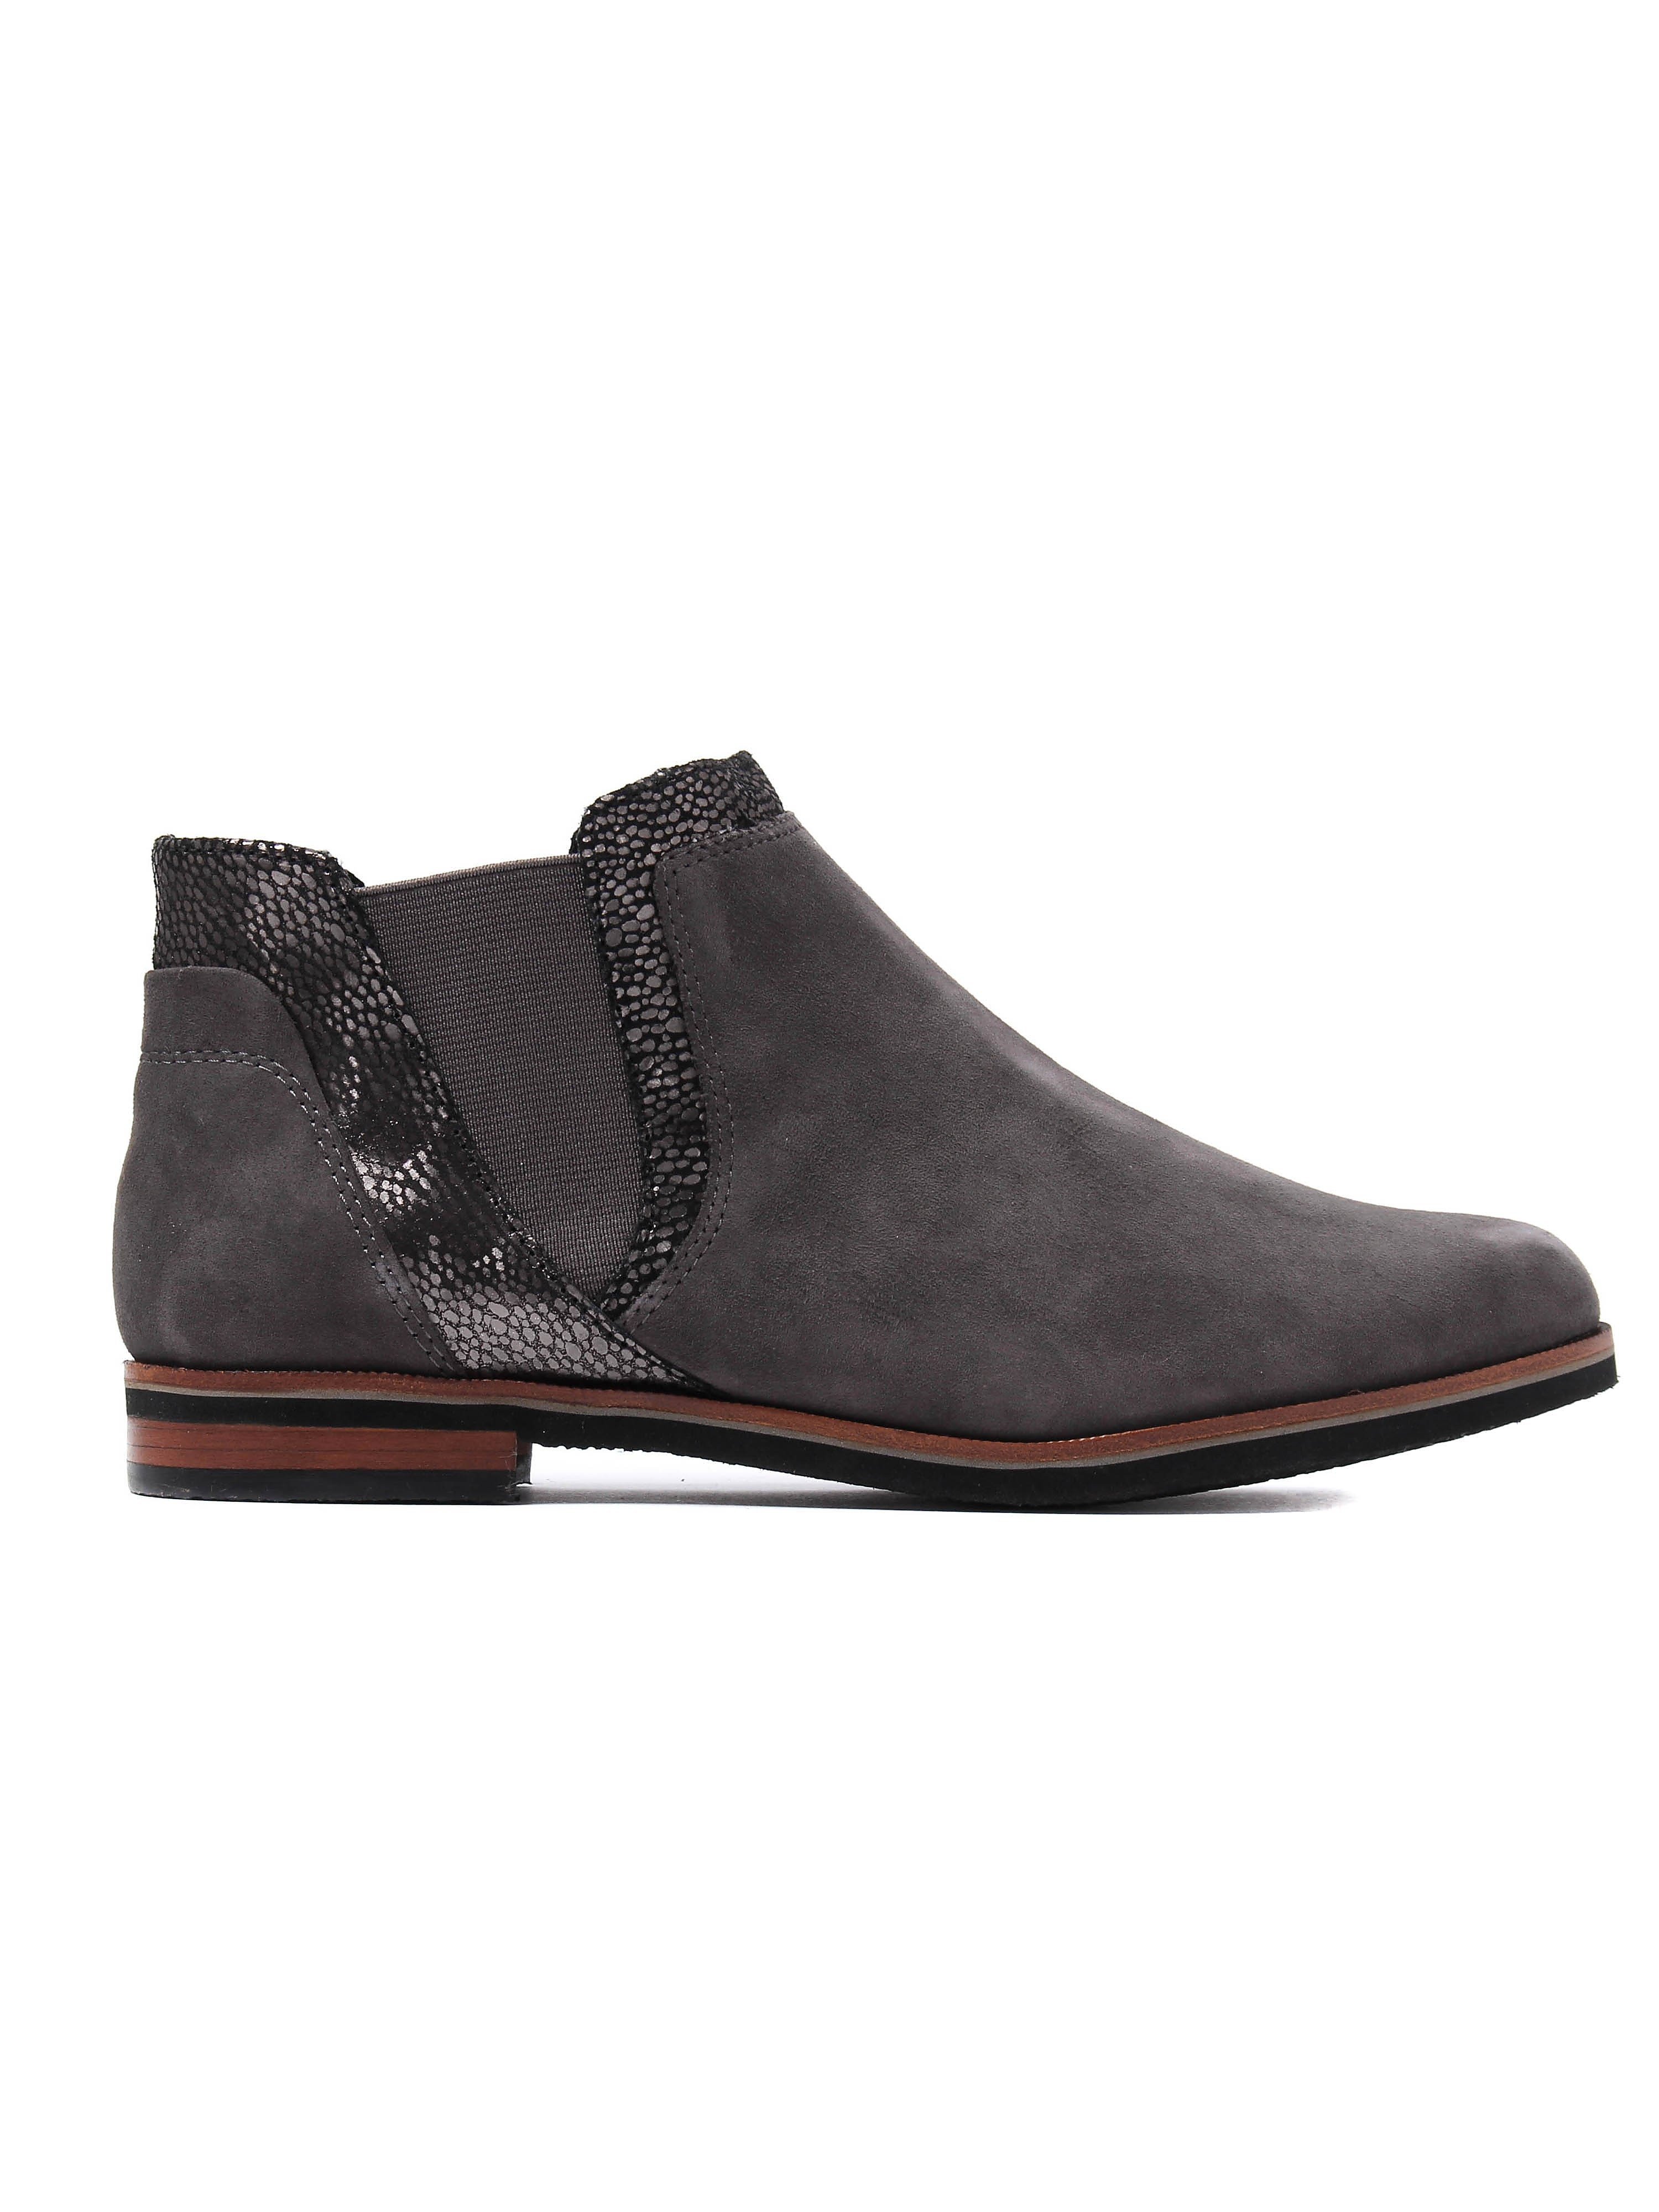 Caprice Women's Chelsea Boots - Anthracite Suede